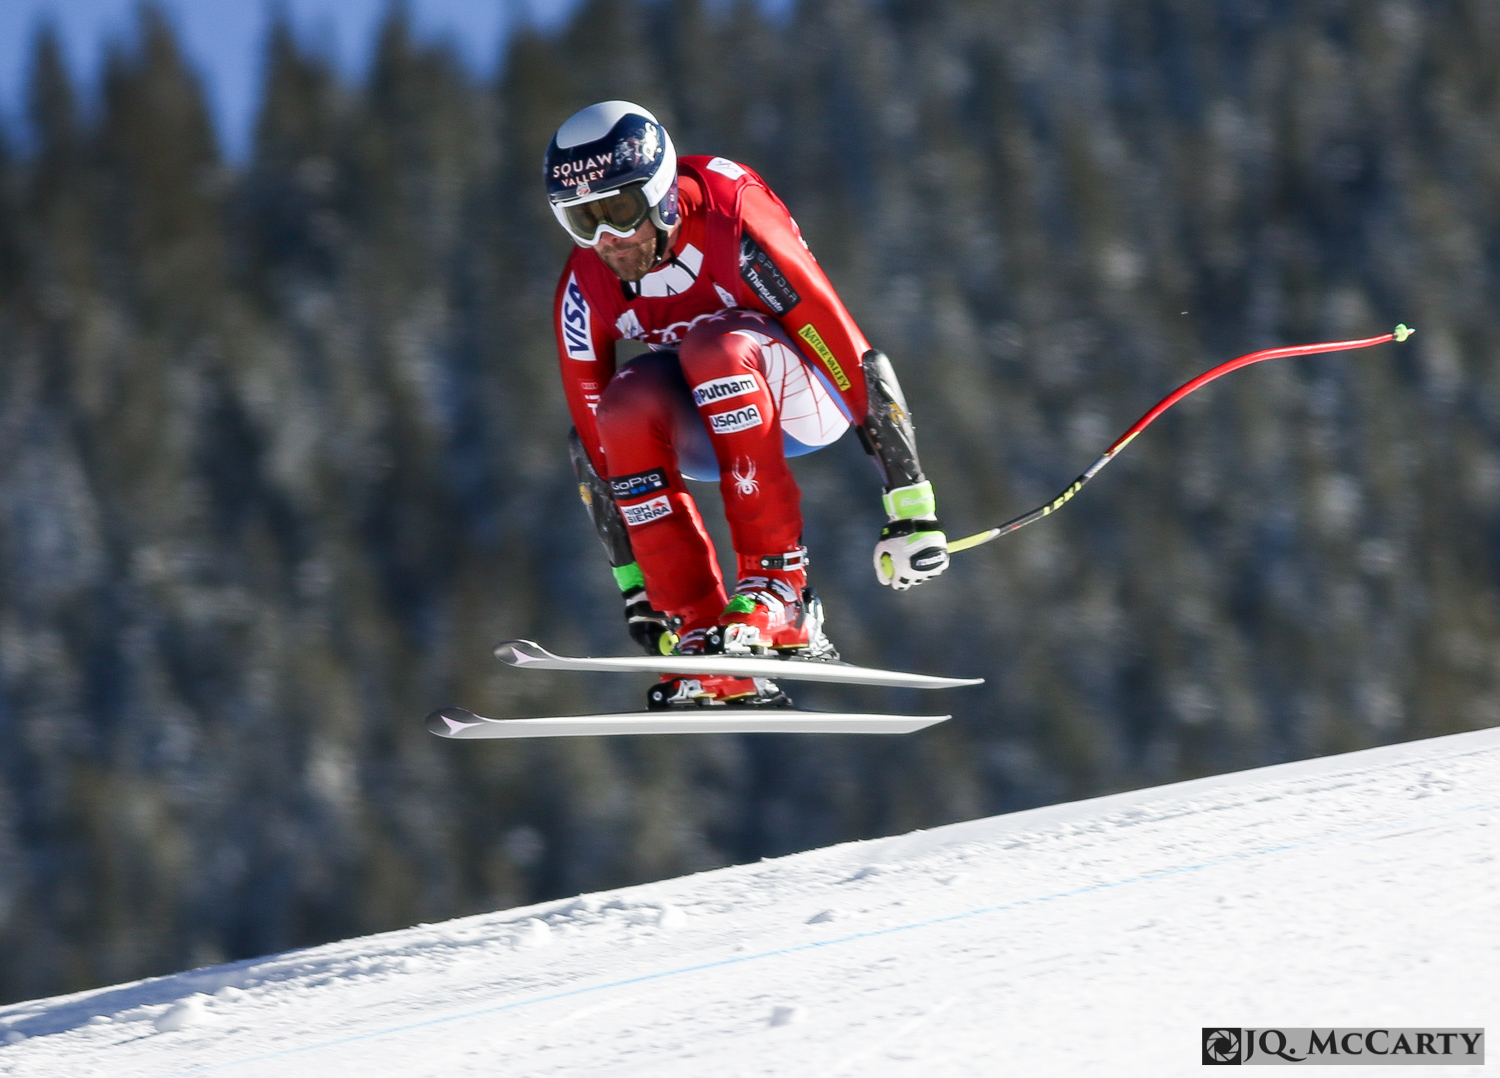 Travis Ganong, of the United States, launches off of the lip at the Red Tail jump during downhill training of the Birds of Prey World Cup ski race Wednesday in Beaver Creek. Ganong finished 38th fastest with a time of 1 minute, 46.44 seconds.